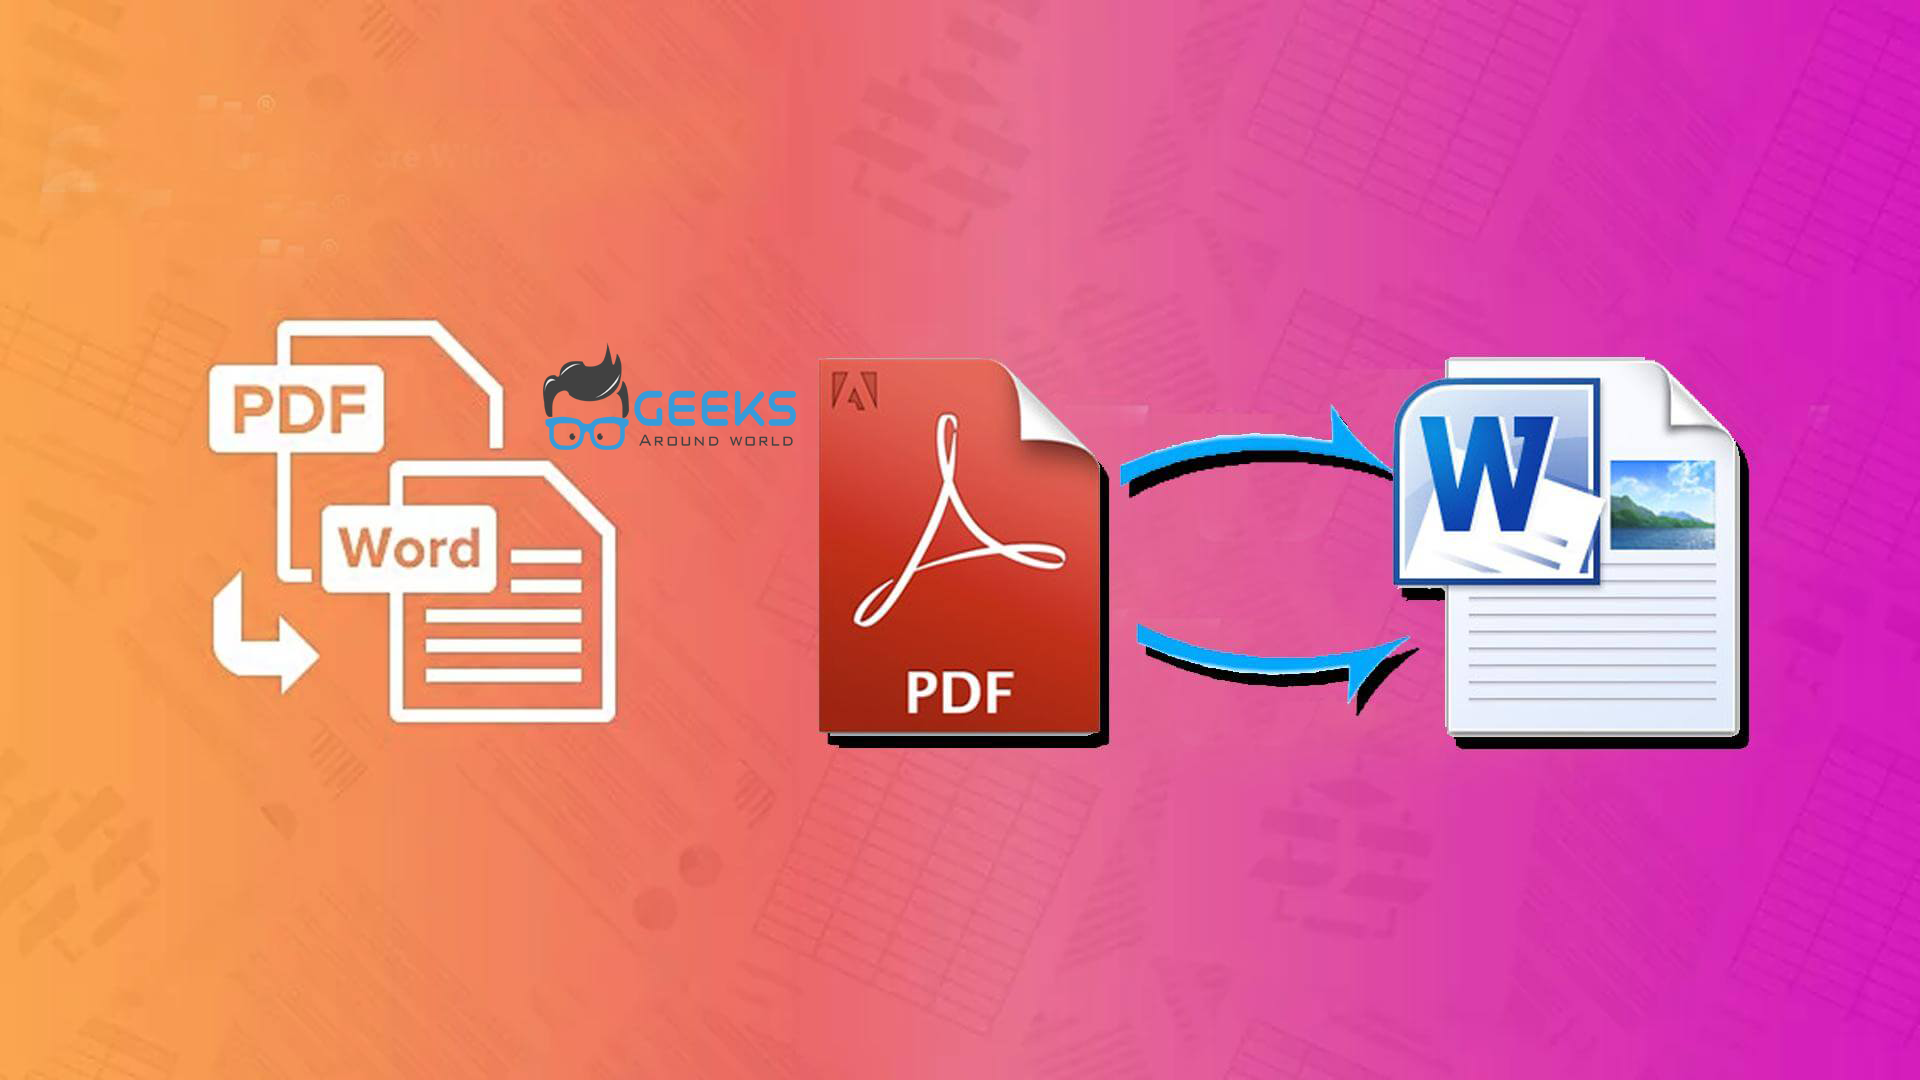 Why do we need to convert PDF to Word?